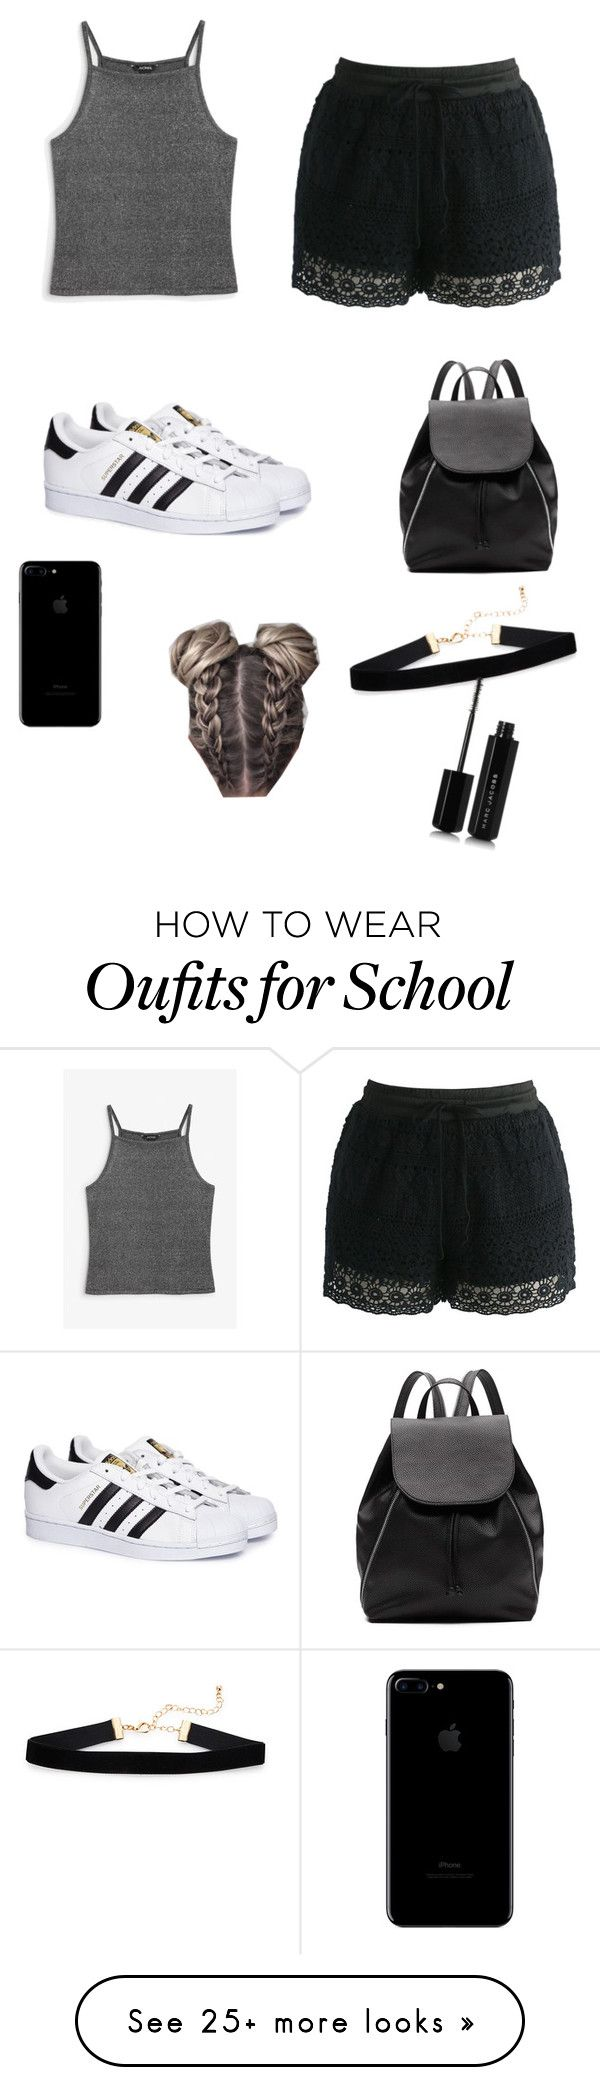 """""""Lazy school heat day"""" by bulldogbeauty on Polyvore featuring Monki, Chicwish, adidas, Witchery and Marc Jacobs"""